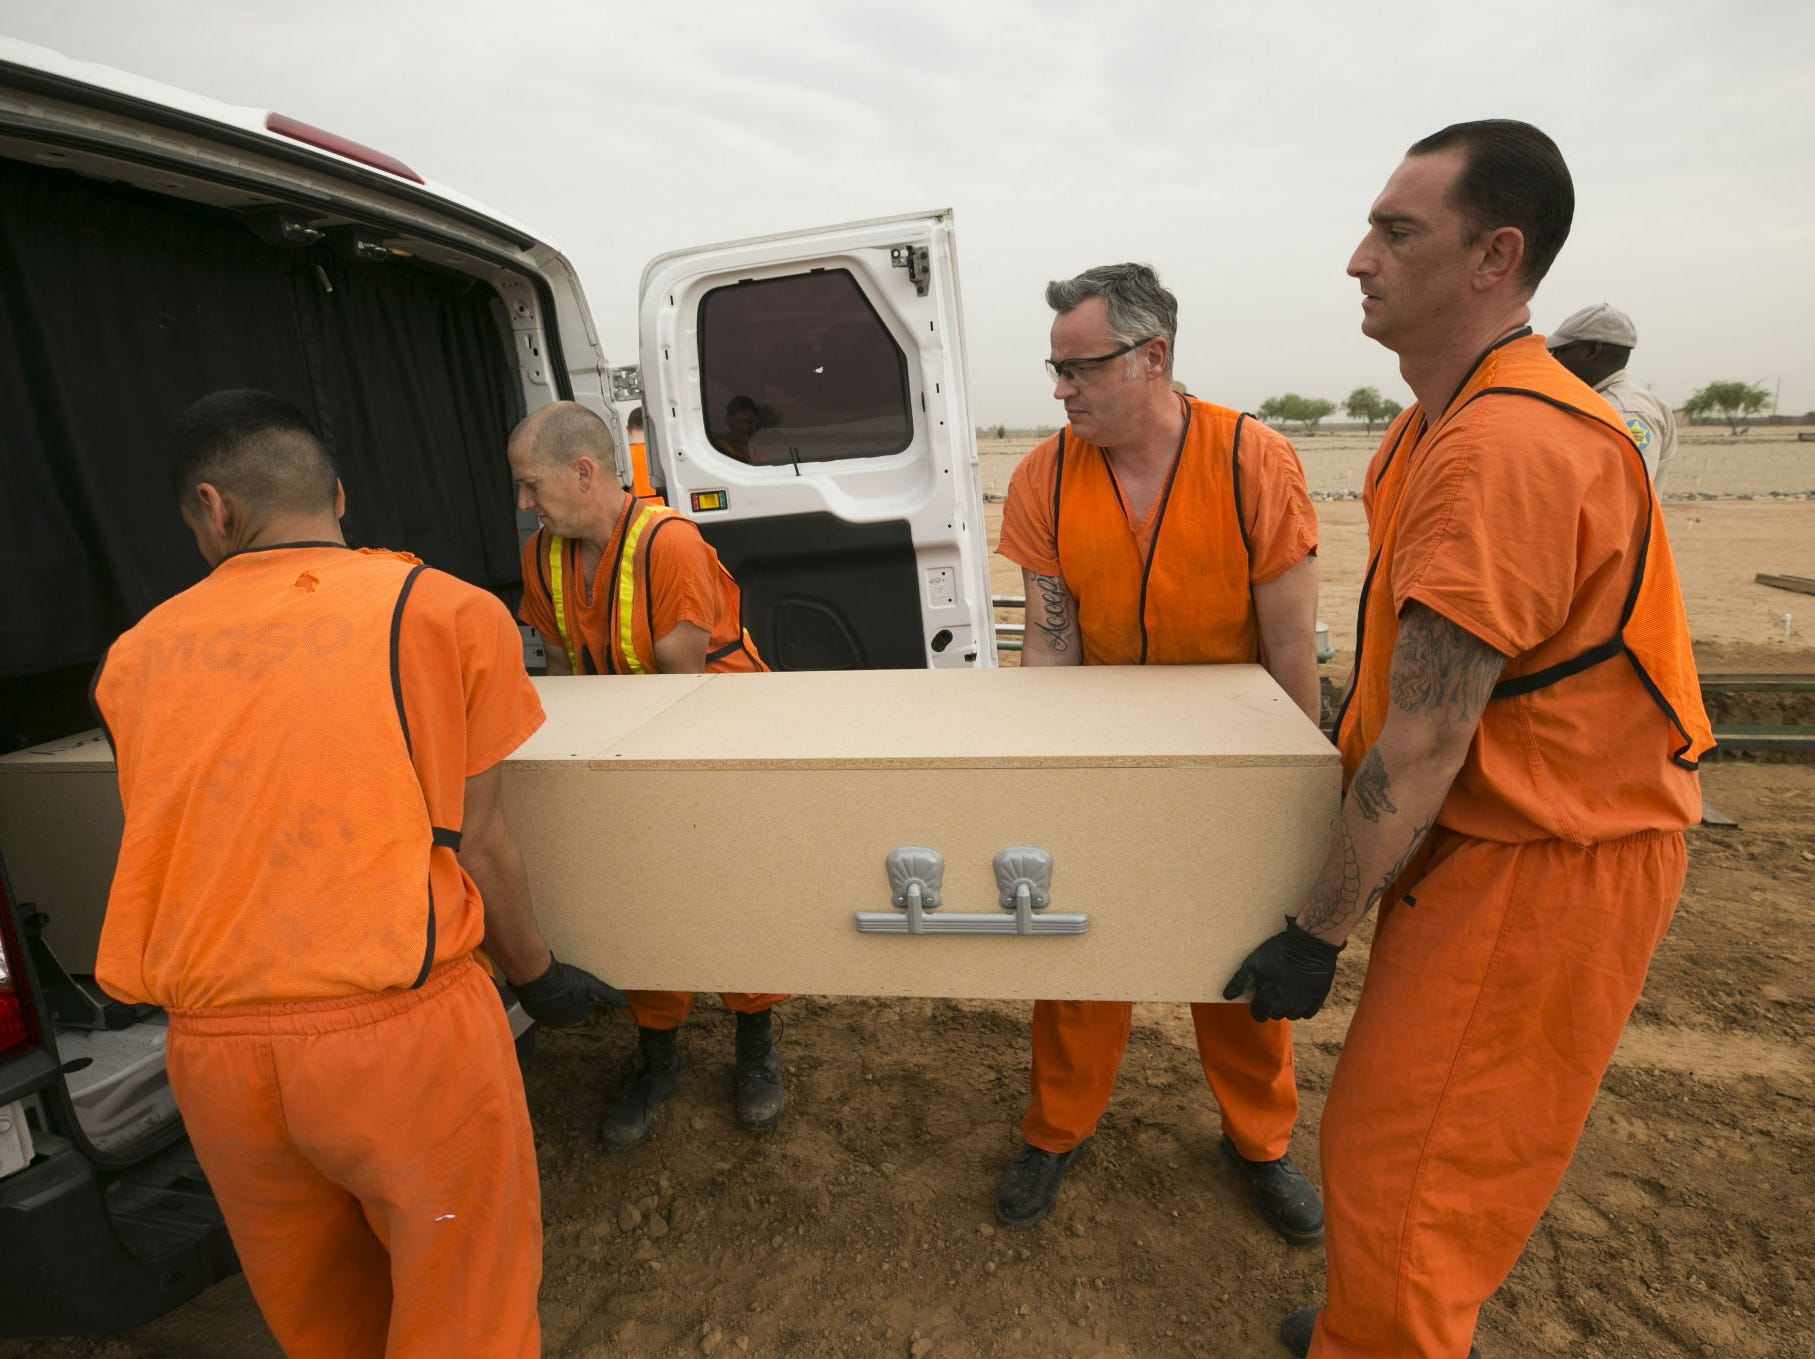 Maricopa County jail inmates assist with the burial of an indigent individual at the White Tanks Cemetery in Litchfield Park on Aug. 9, 2018.